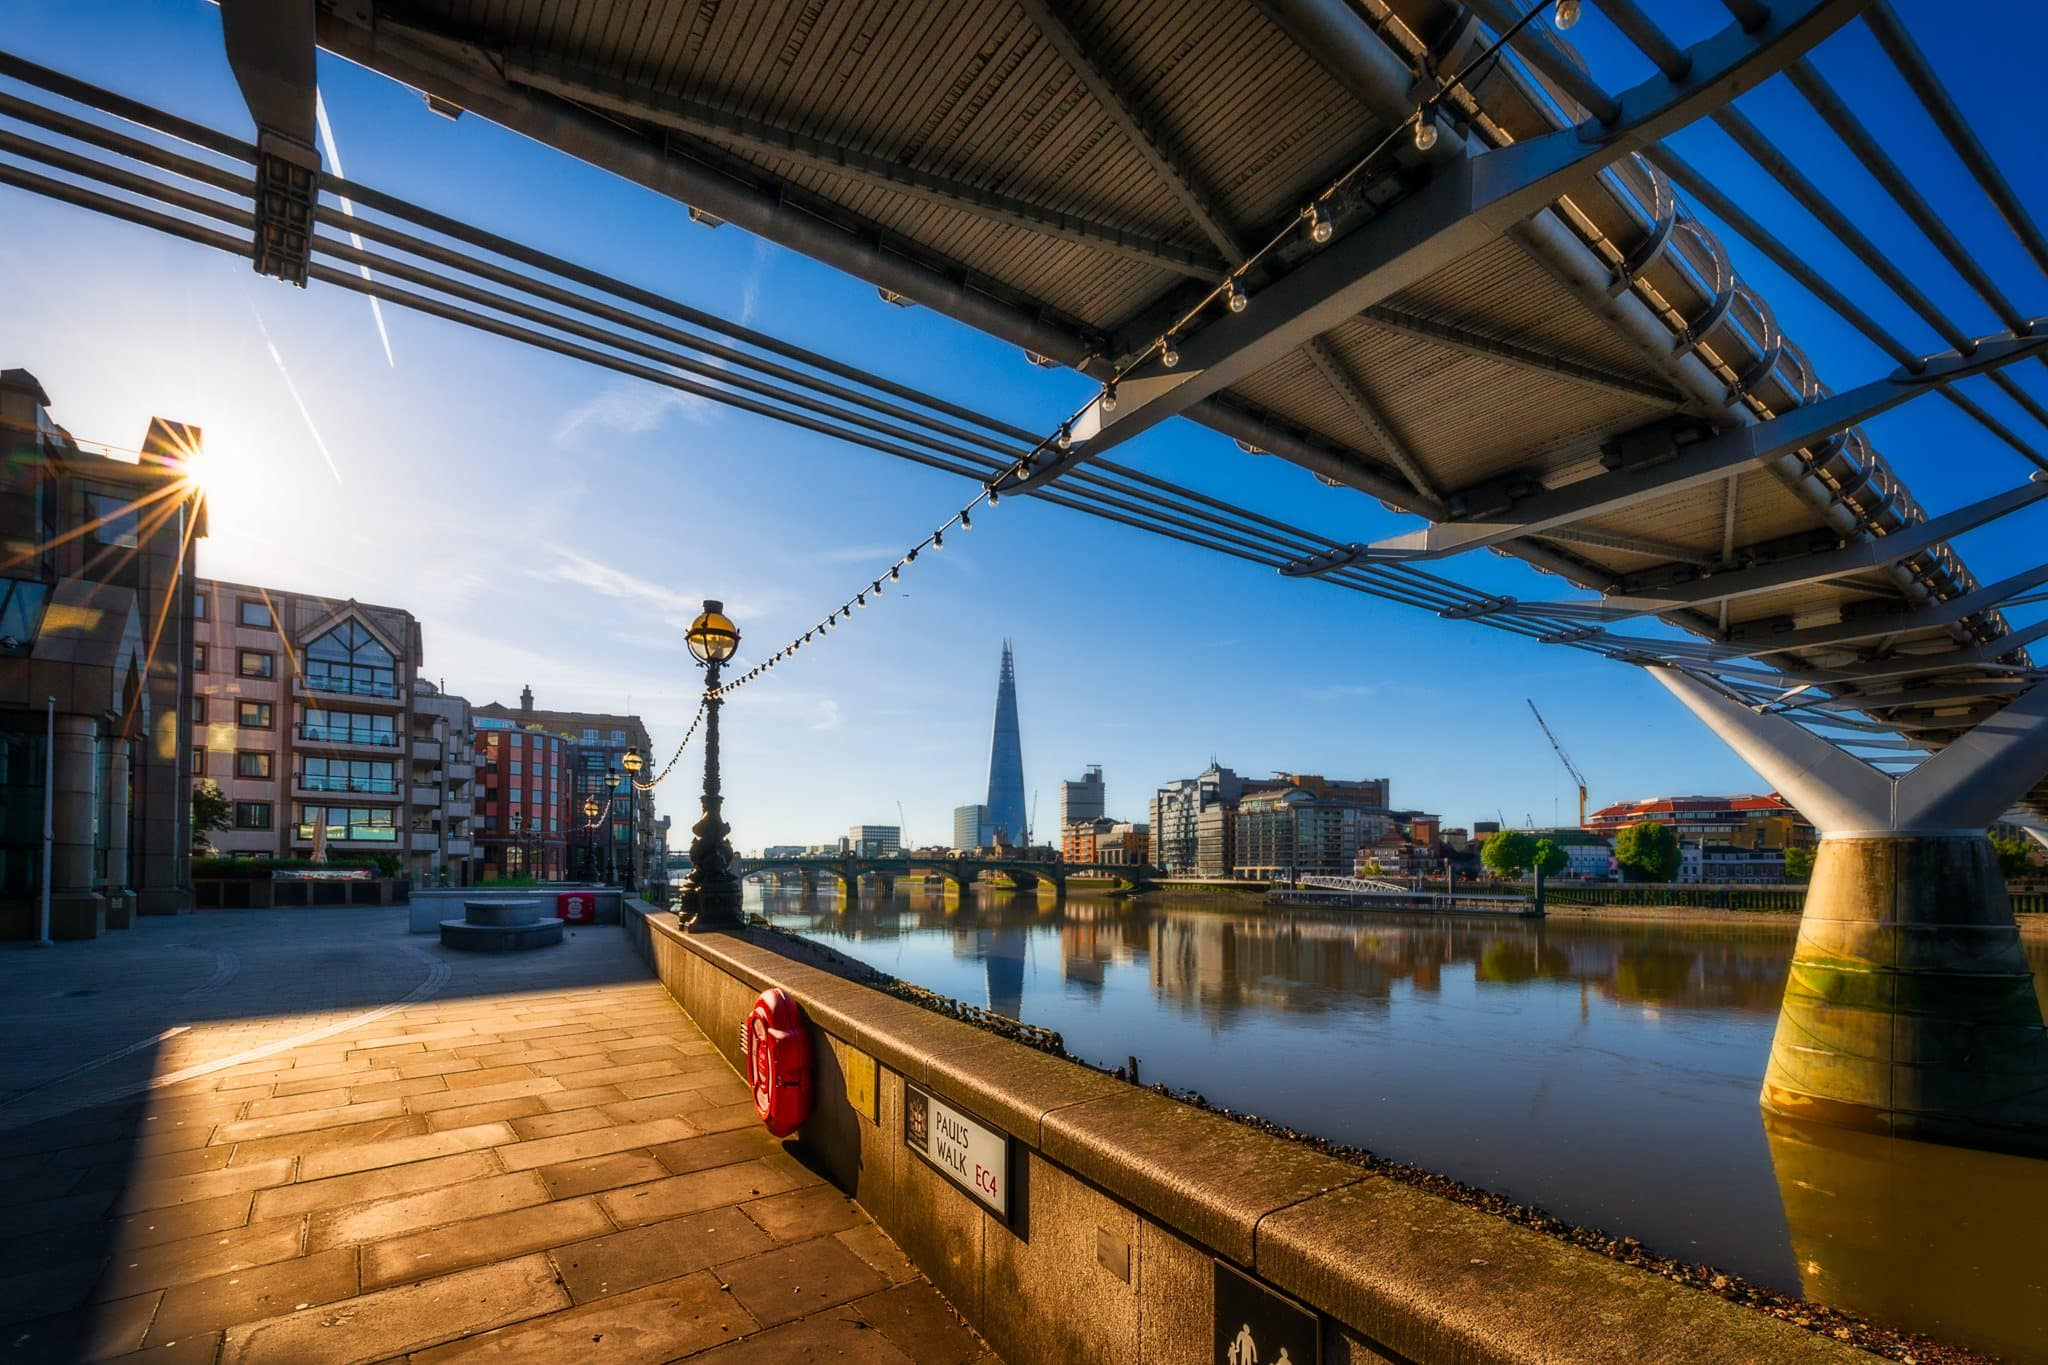 A walk in London on a sunny day in England. Photo with The Shard and Millennium Bridge in the background.